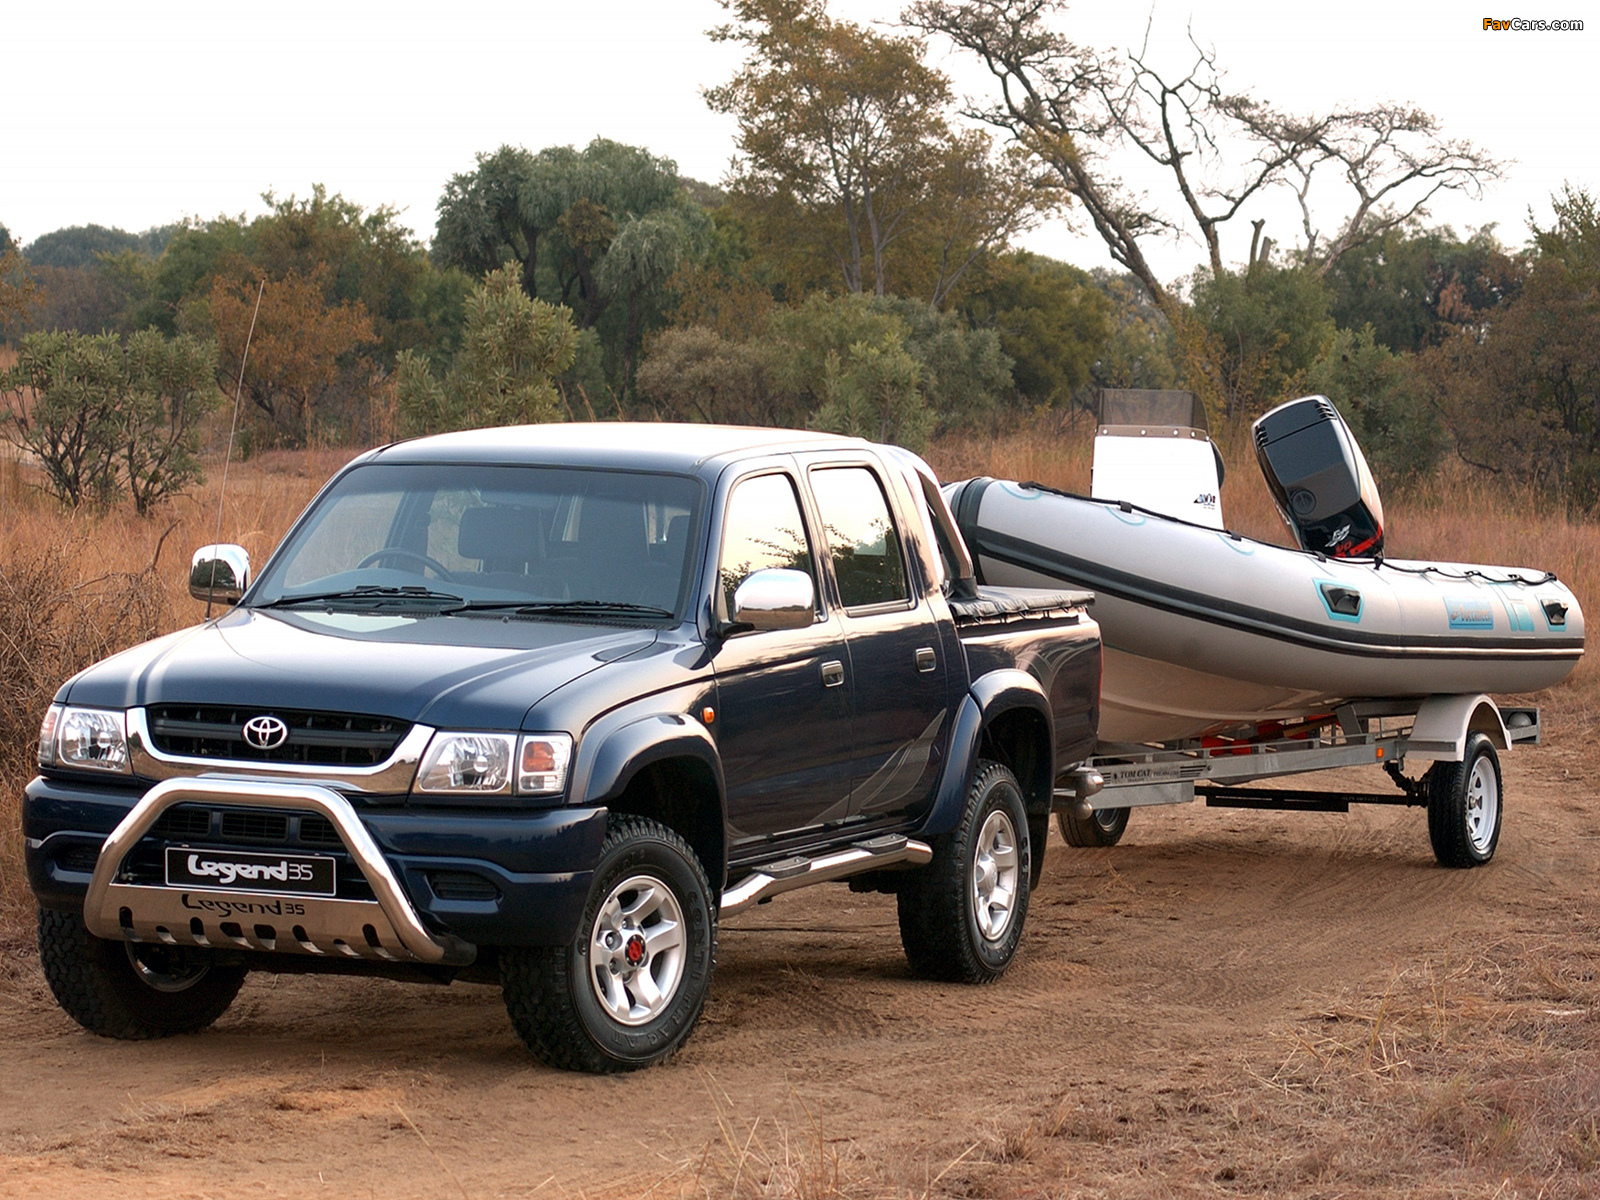 Toyota Off Road >> Toyota Hilux 2700i Legend 35 Double Cab 2004 photos (1600x1200)